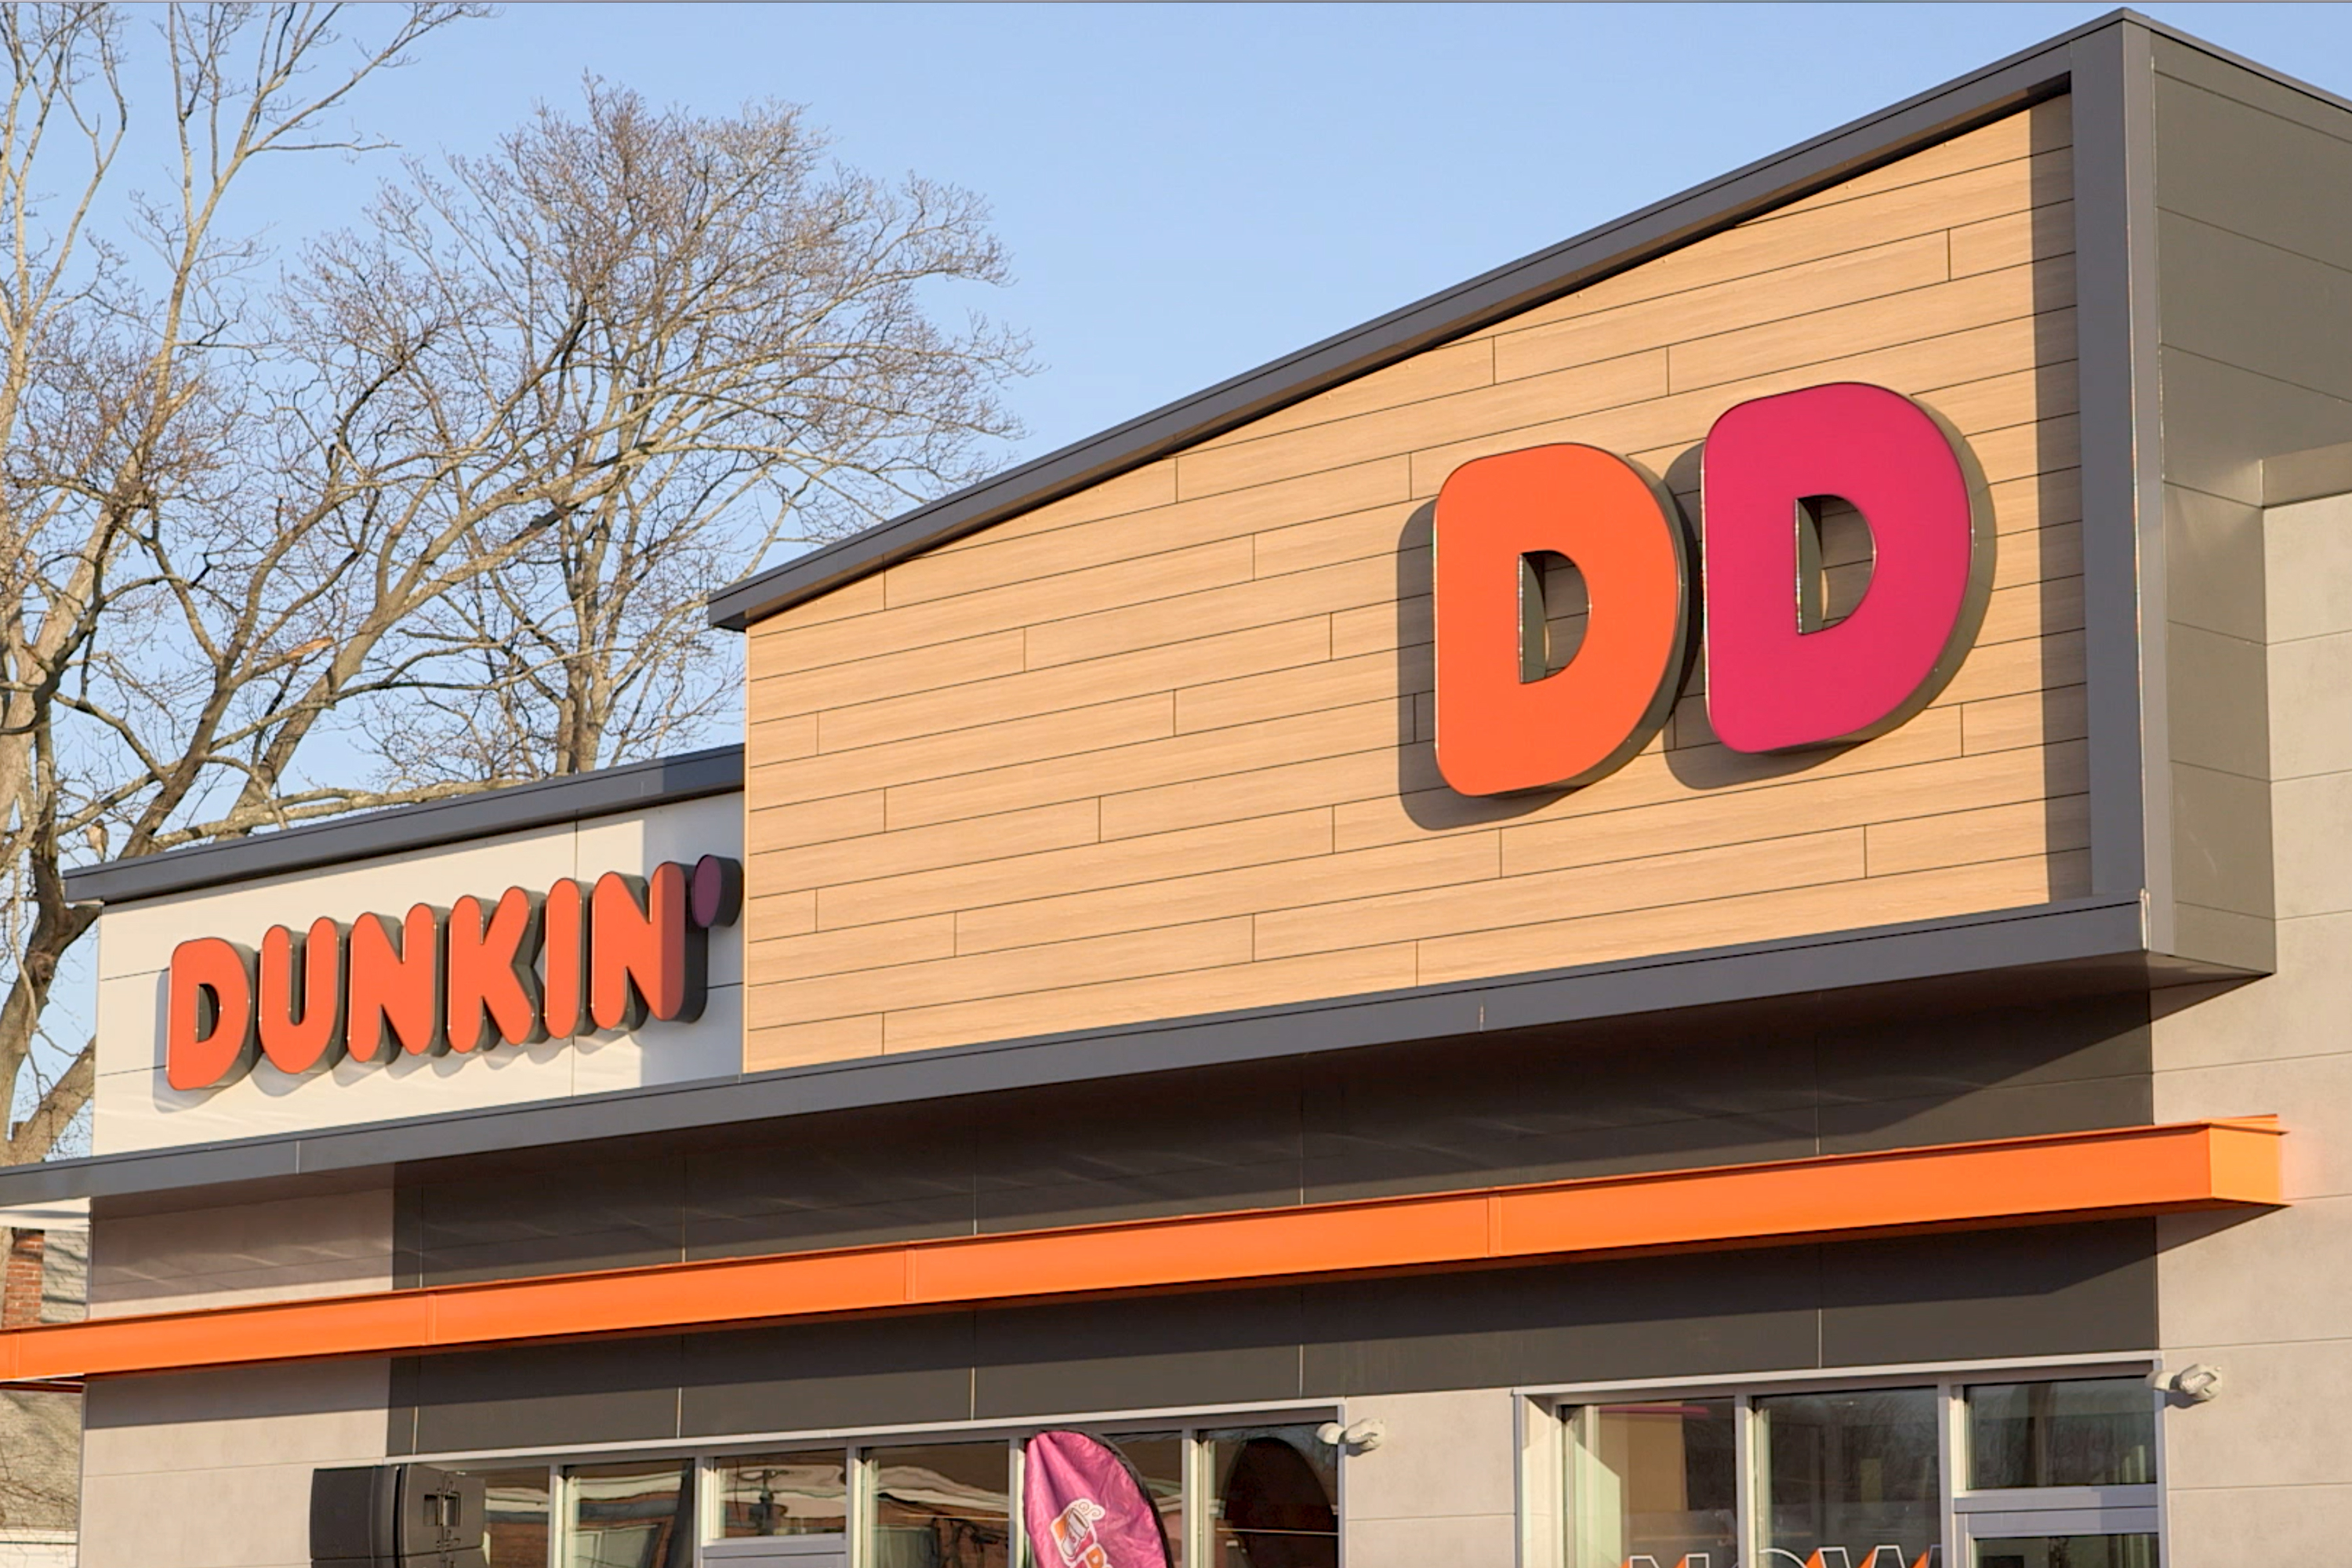 Dunkin's CMO dishes on the brand's name change and stronger sales growth